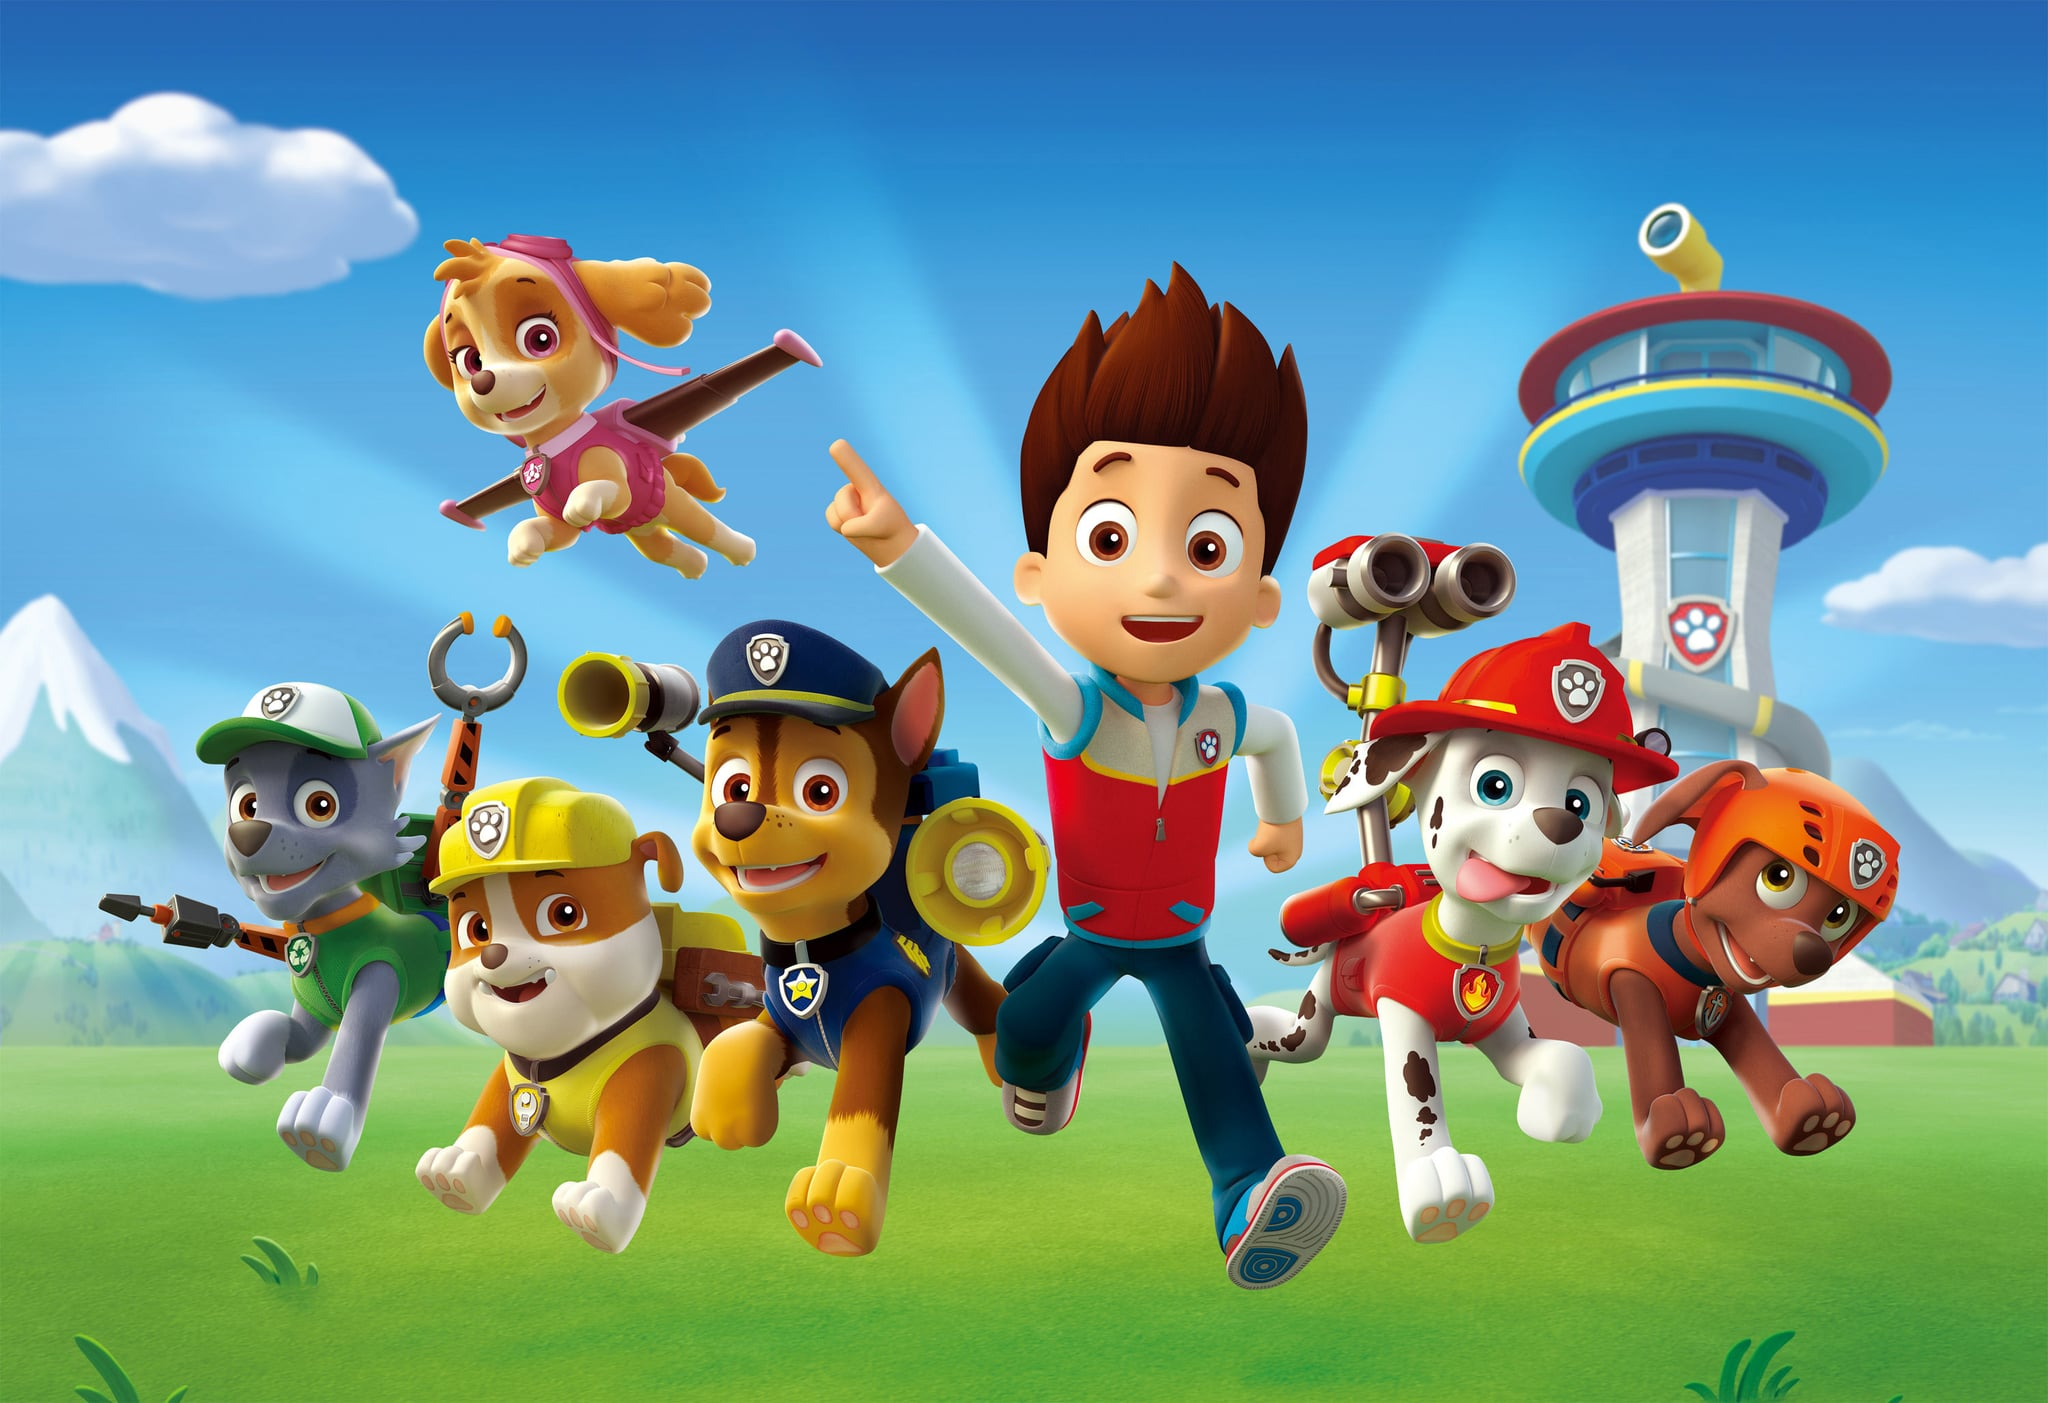 PAW PATROL, l-r: Skye (flying upper left), Zuma, Rubble, Chase, Ryder, Marshall, Rocky, (Season 1), 2013. Nickelodeon/courtesy Everett Collection